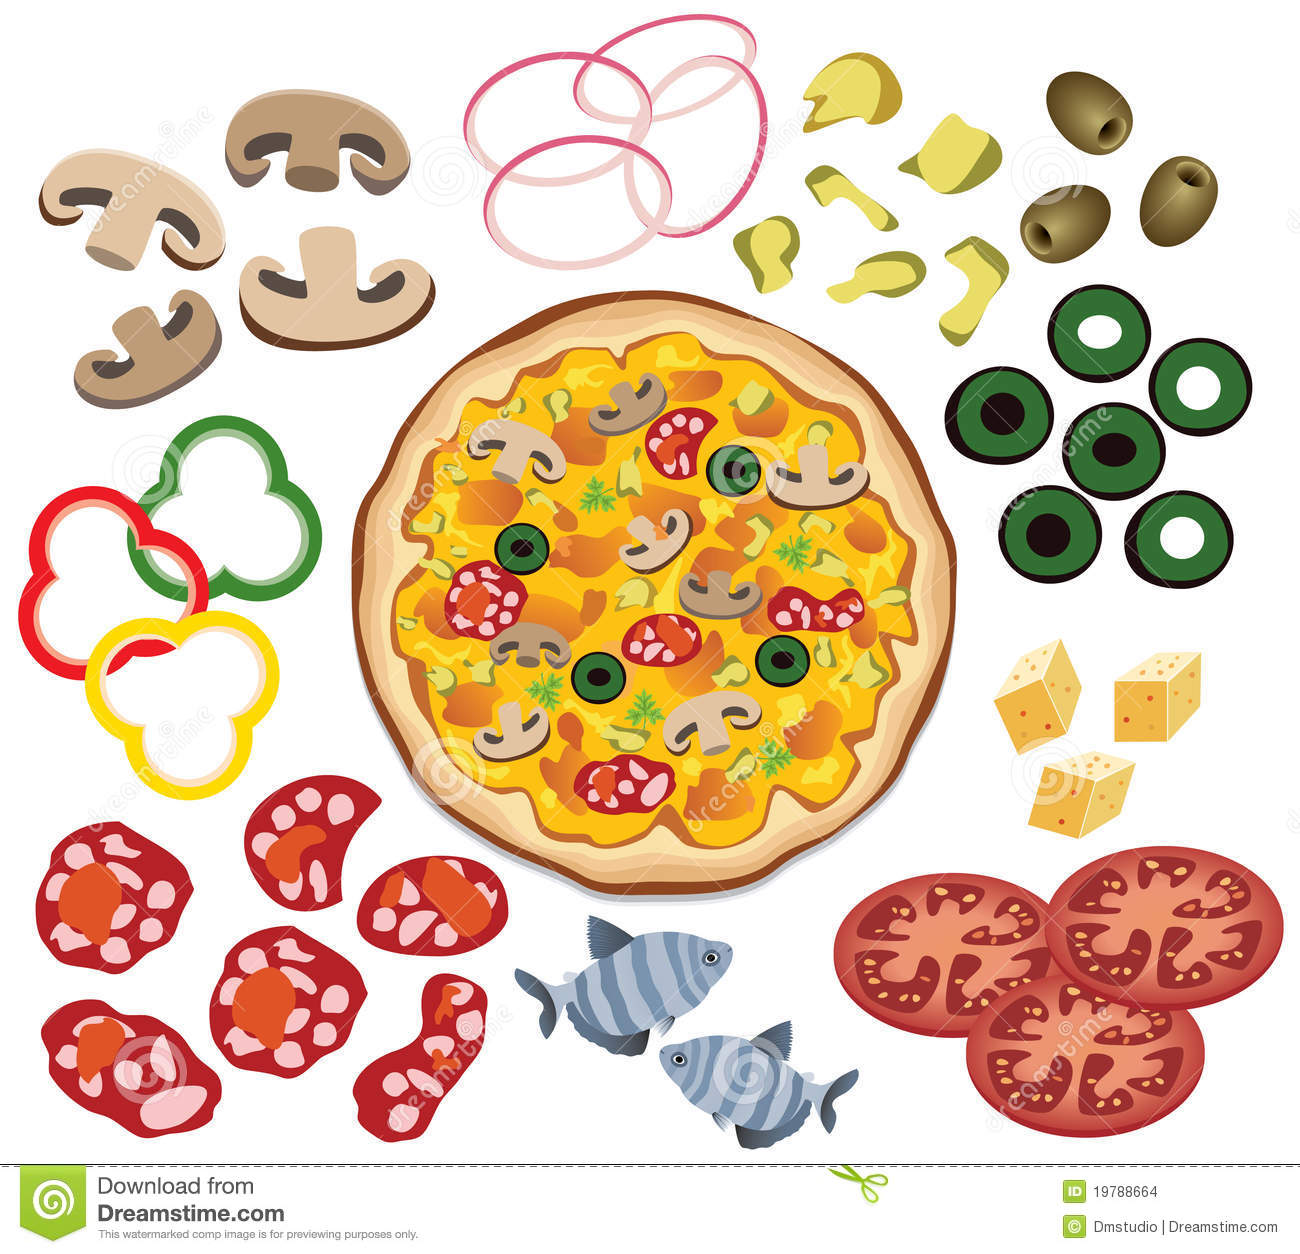 photograph about Printable Pizza Toppings named Pizza Toppings Clipart Seem to be At Clip Artwork Pics - ClipartLook